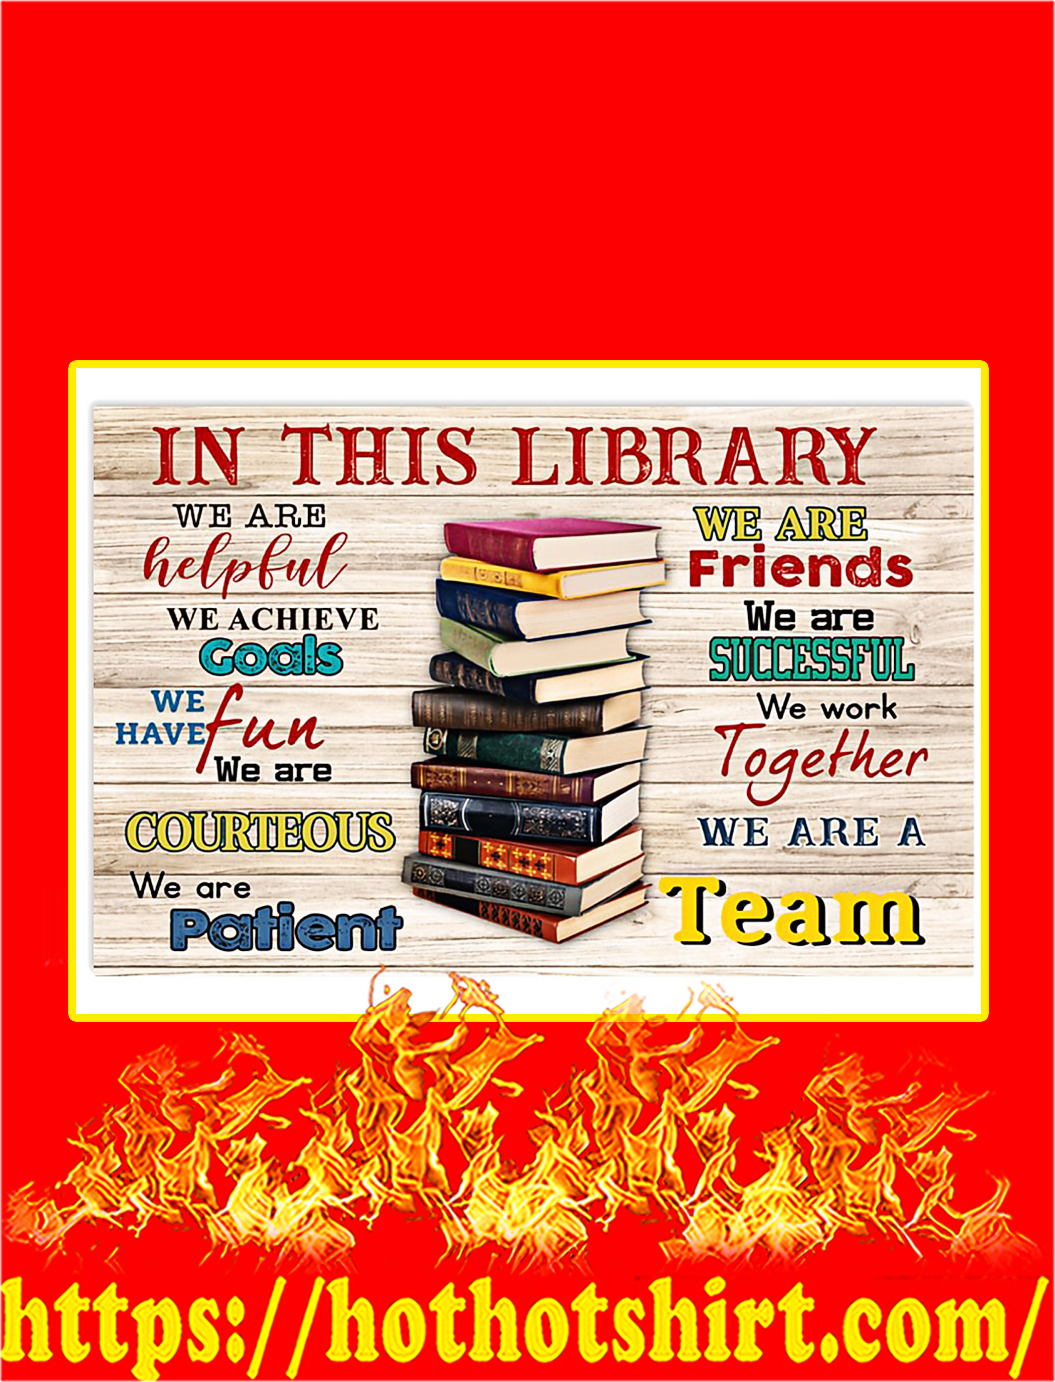 In this library we are a team poster - A4